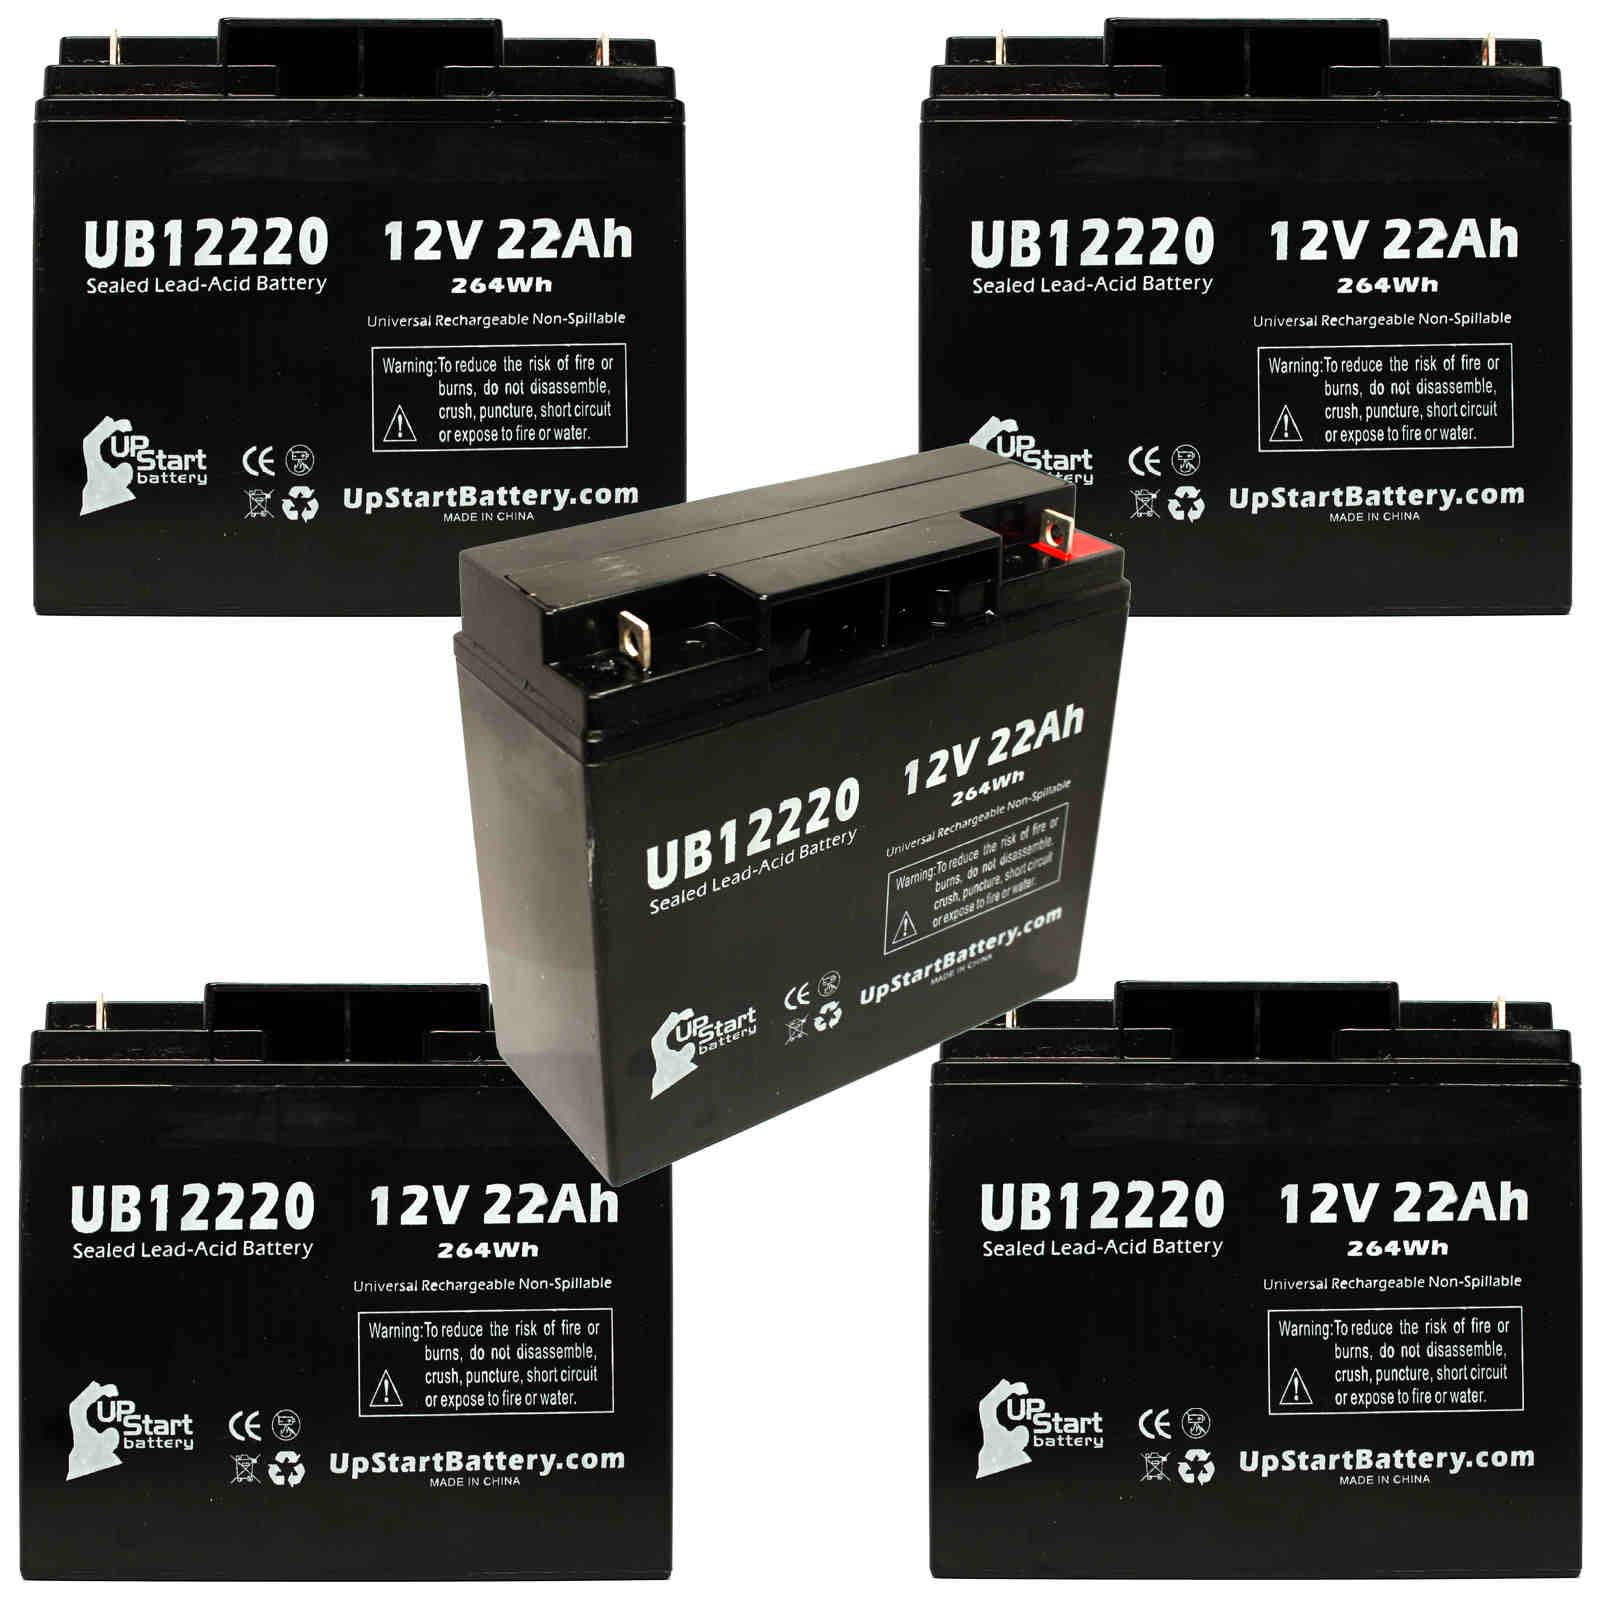 UpStart Battery 5x Pack - SEARS CRAFTSMAN DIEHARD PORTABLE POWER 1150 Battery - Replacement UB12220 SLA Battery (12V, 22Ah, T4 Terminal) at Sears.com